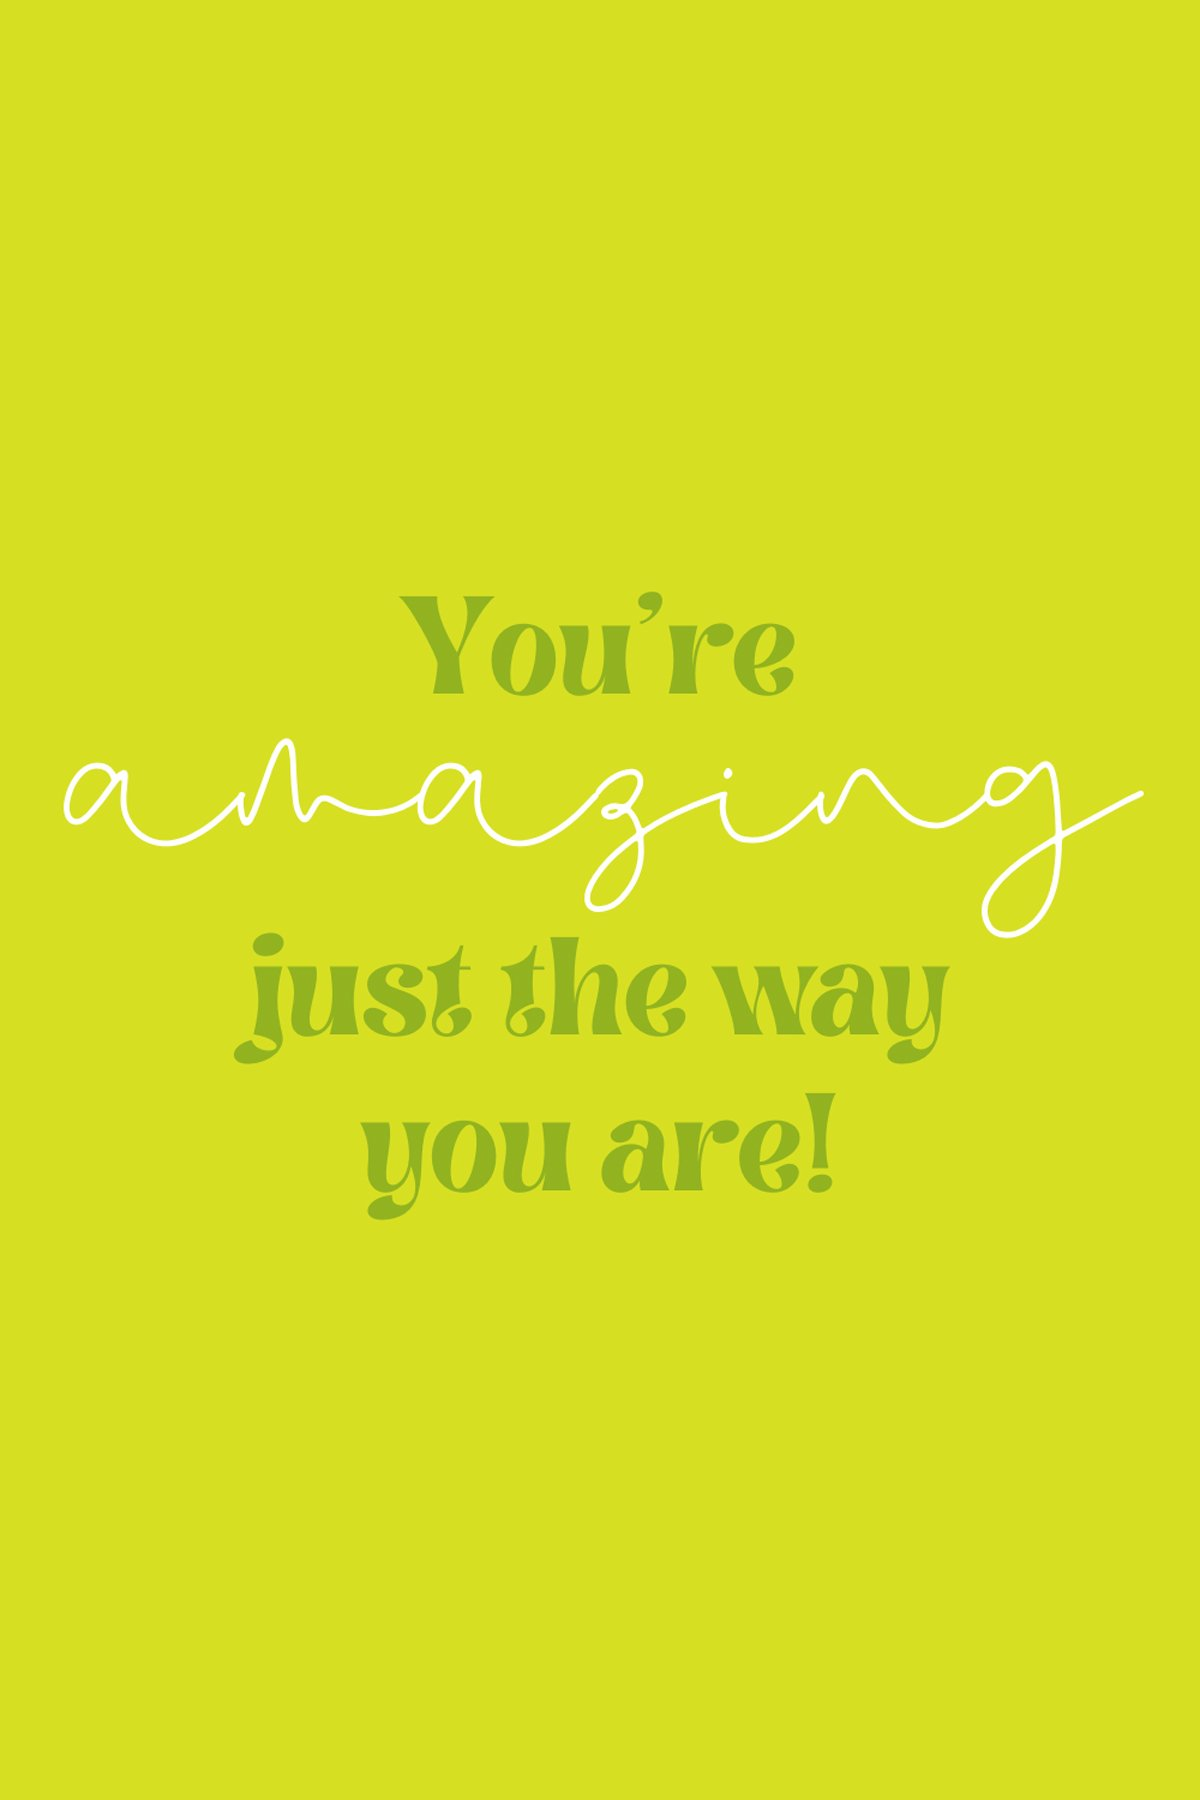 you are awesome just the way you are